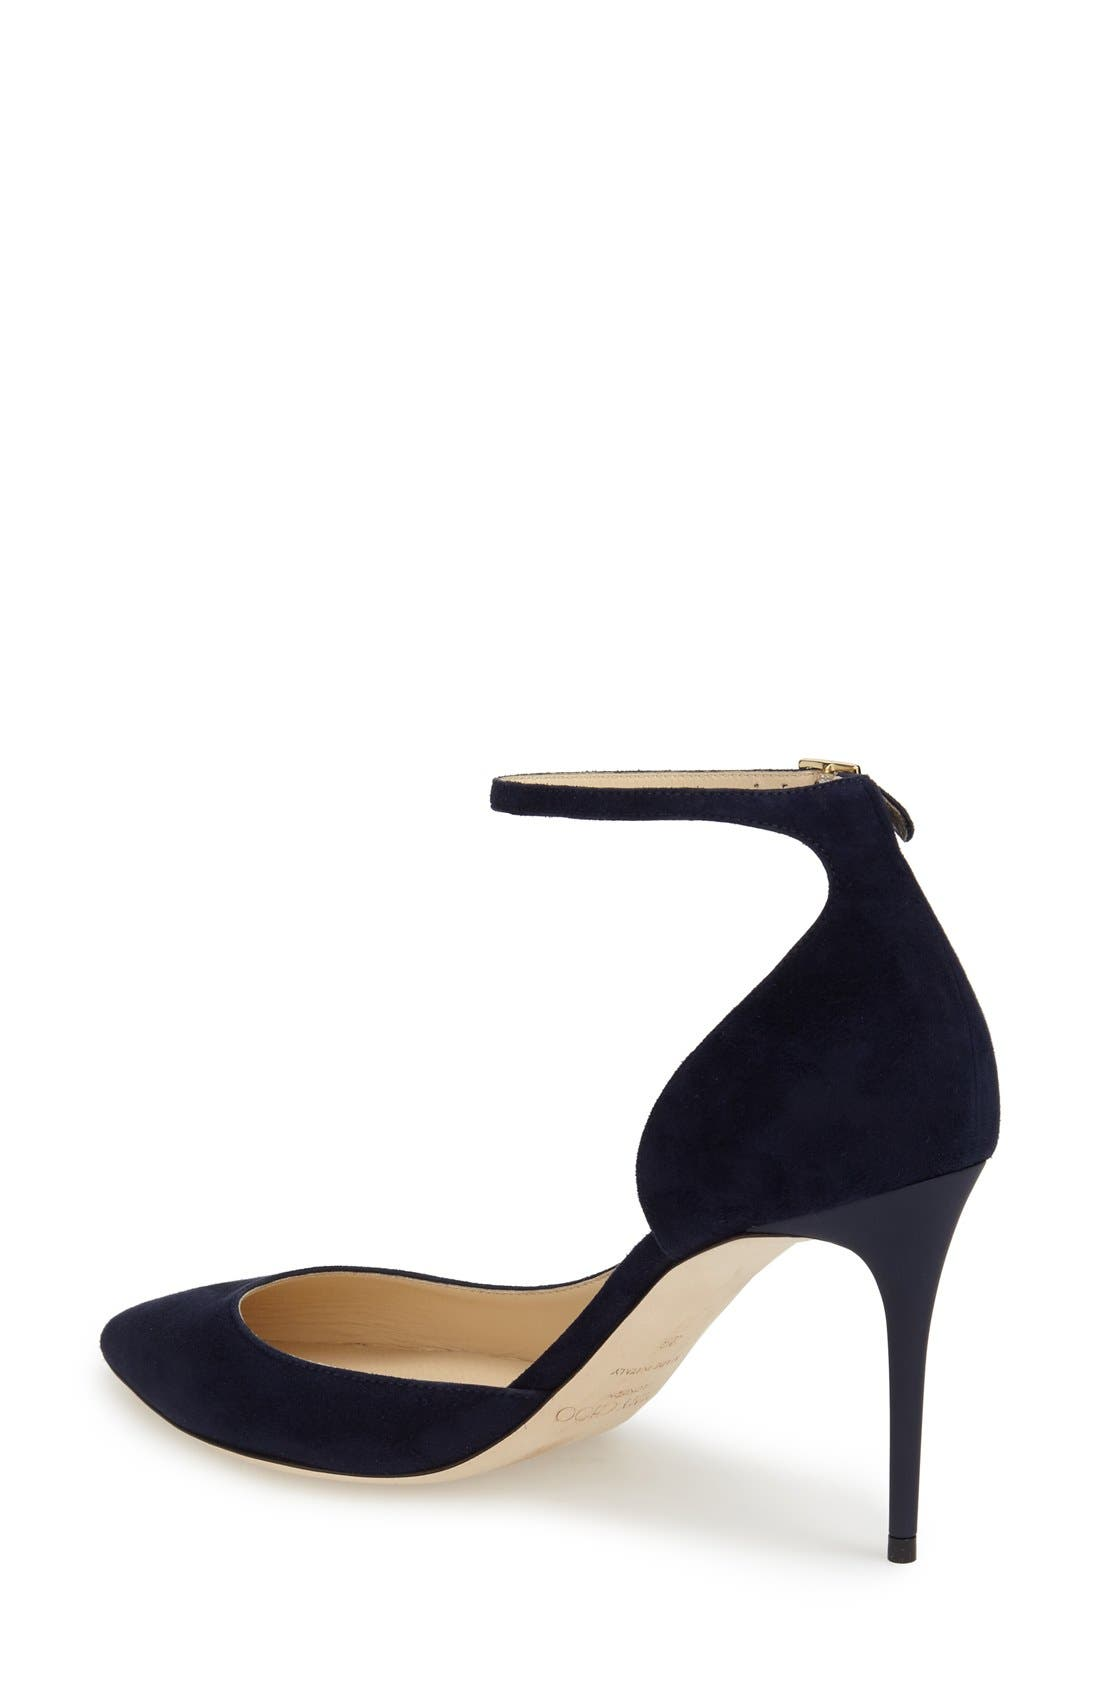 'Lucy' Half d'Orsay Pointy Toe Pump,                             Alternate thumbnail 3, color,                             410